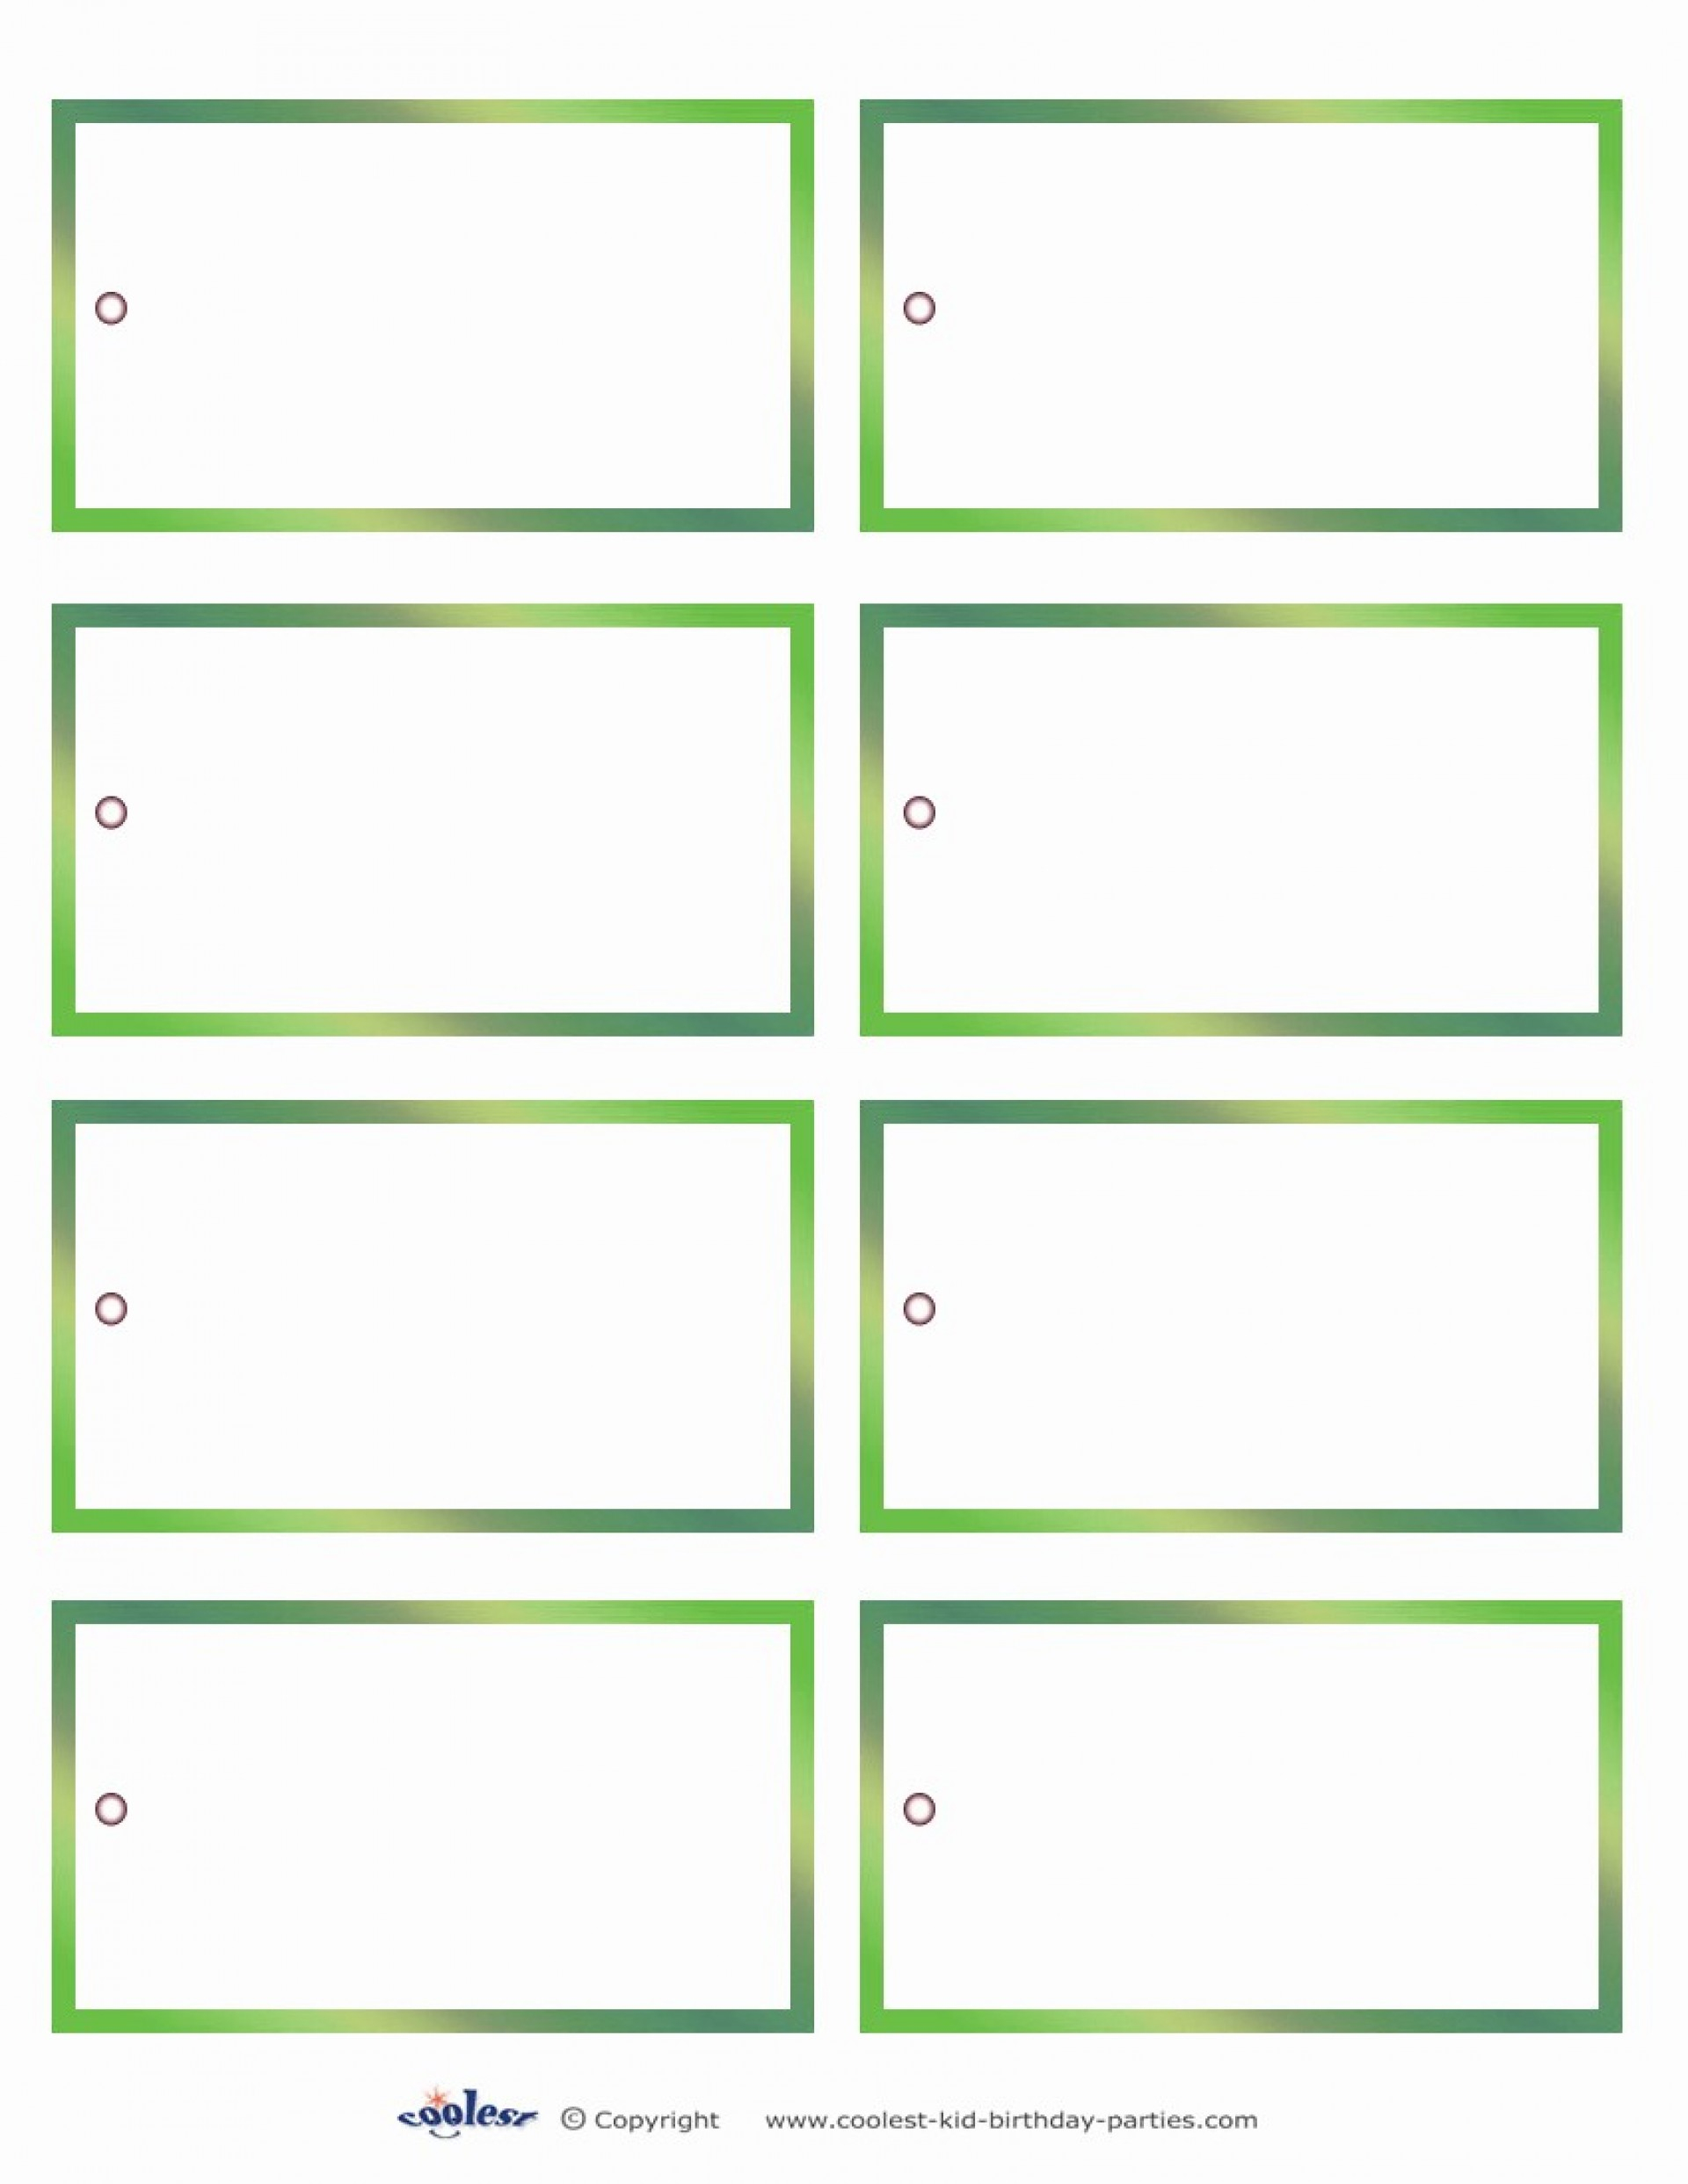 018 Free Printable Tag Templates Fresh Best Of Gift Tags With - Free Printable Blank Gift Tags